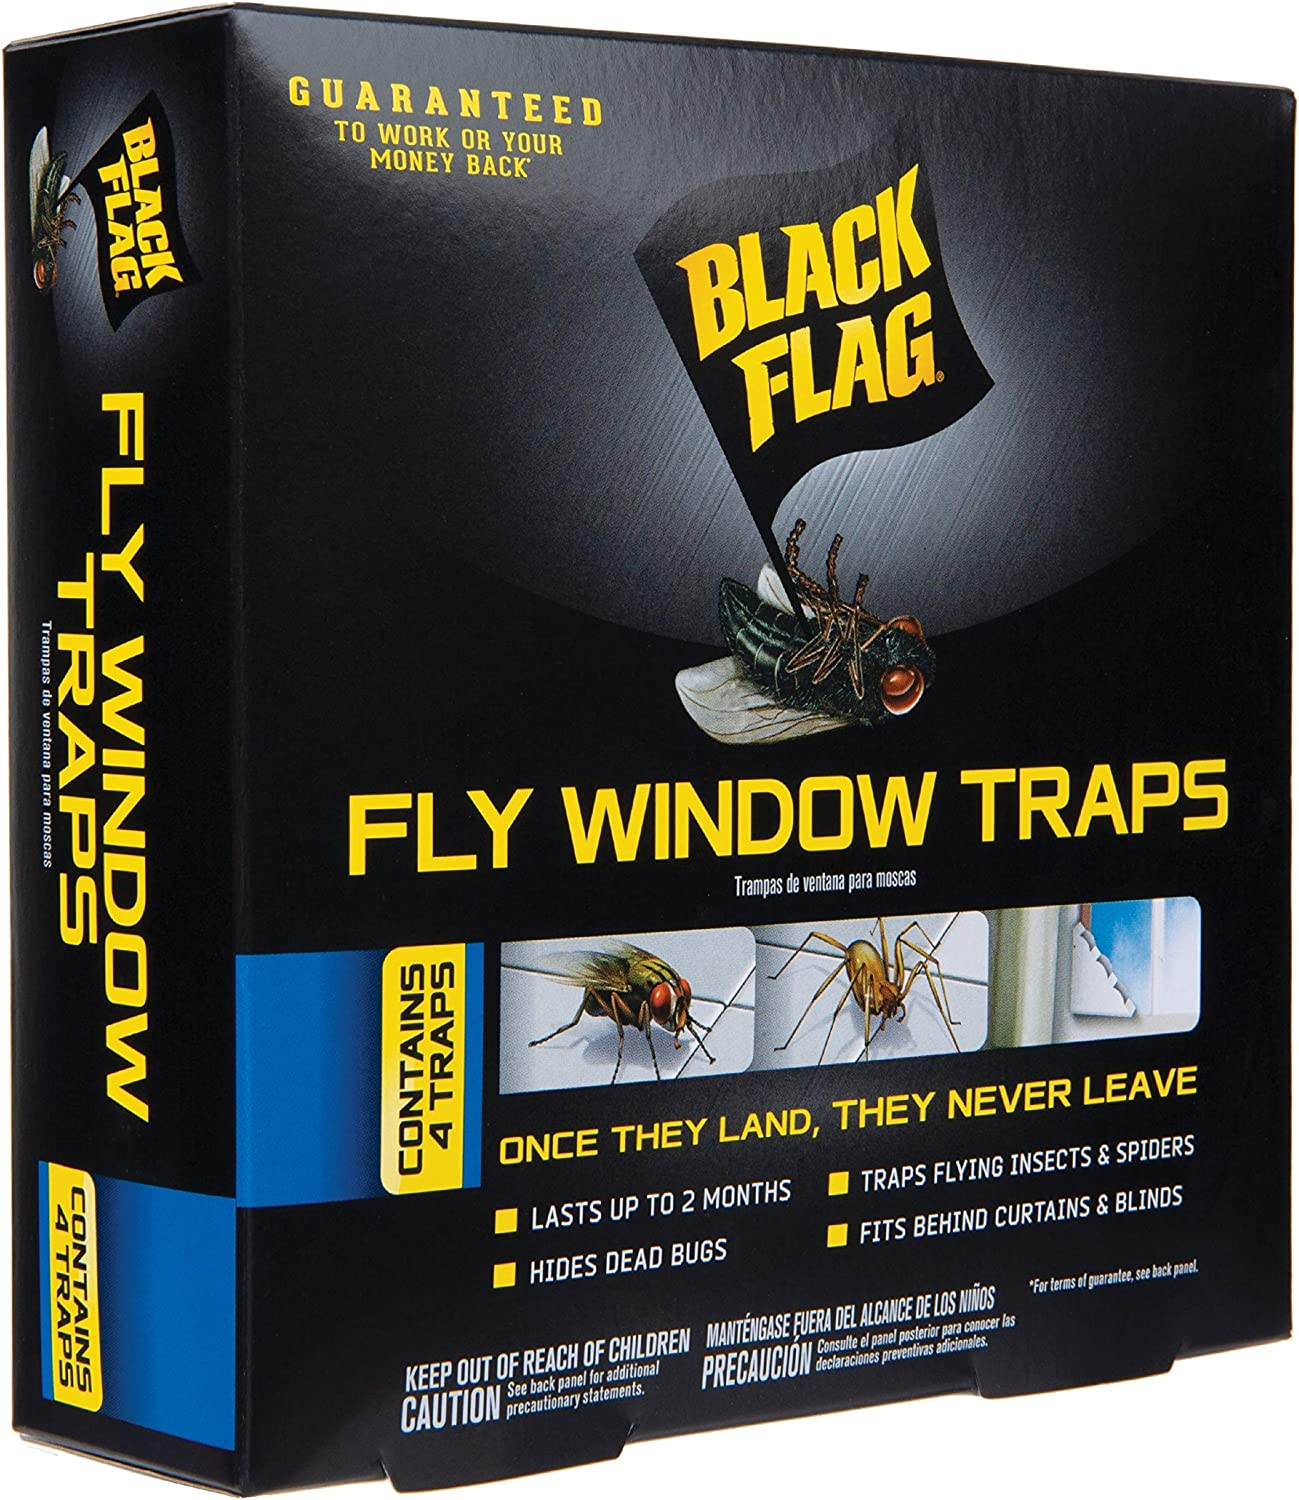 Black Flag HG-11017 Fly Window Trap, Ready-to-Use, 4-Count, 12, Clear